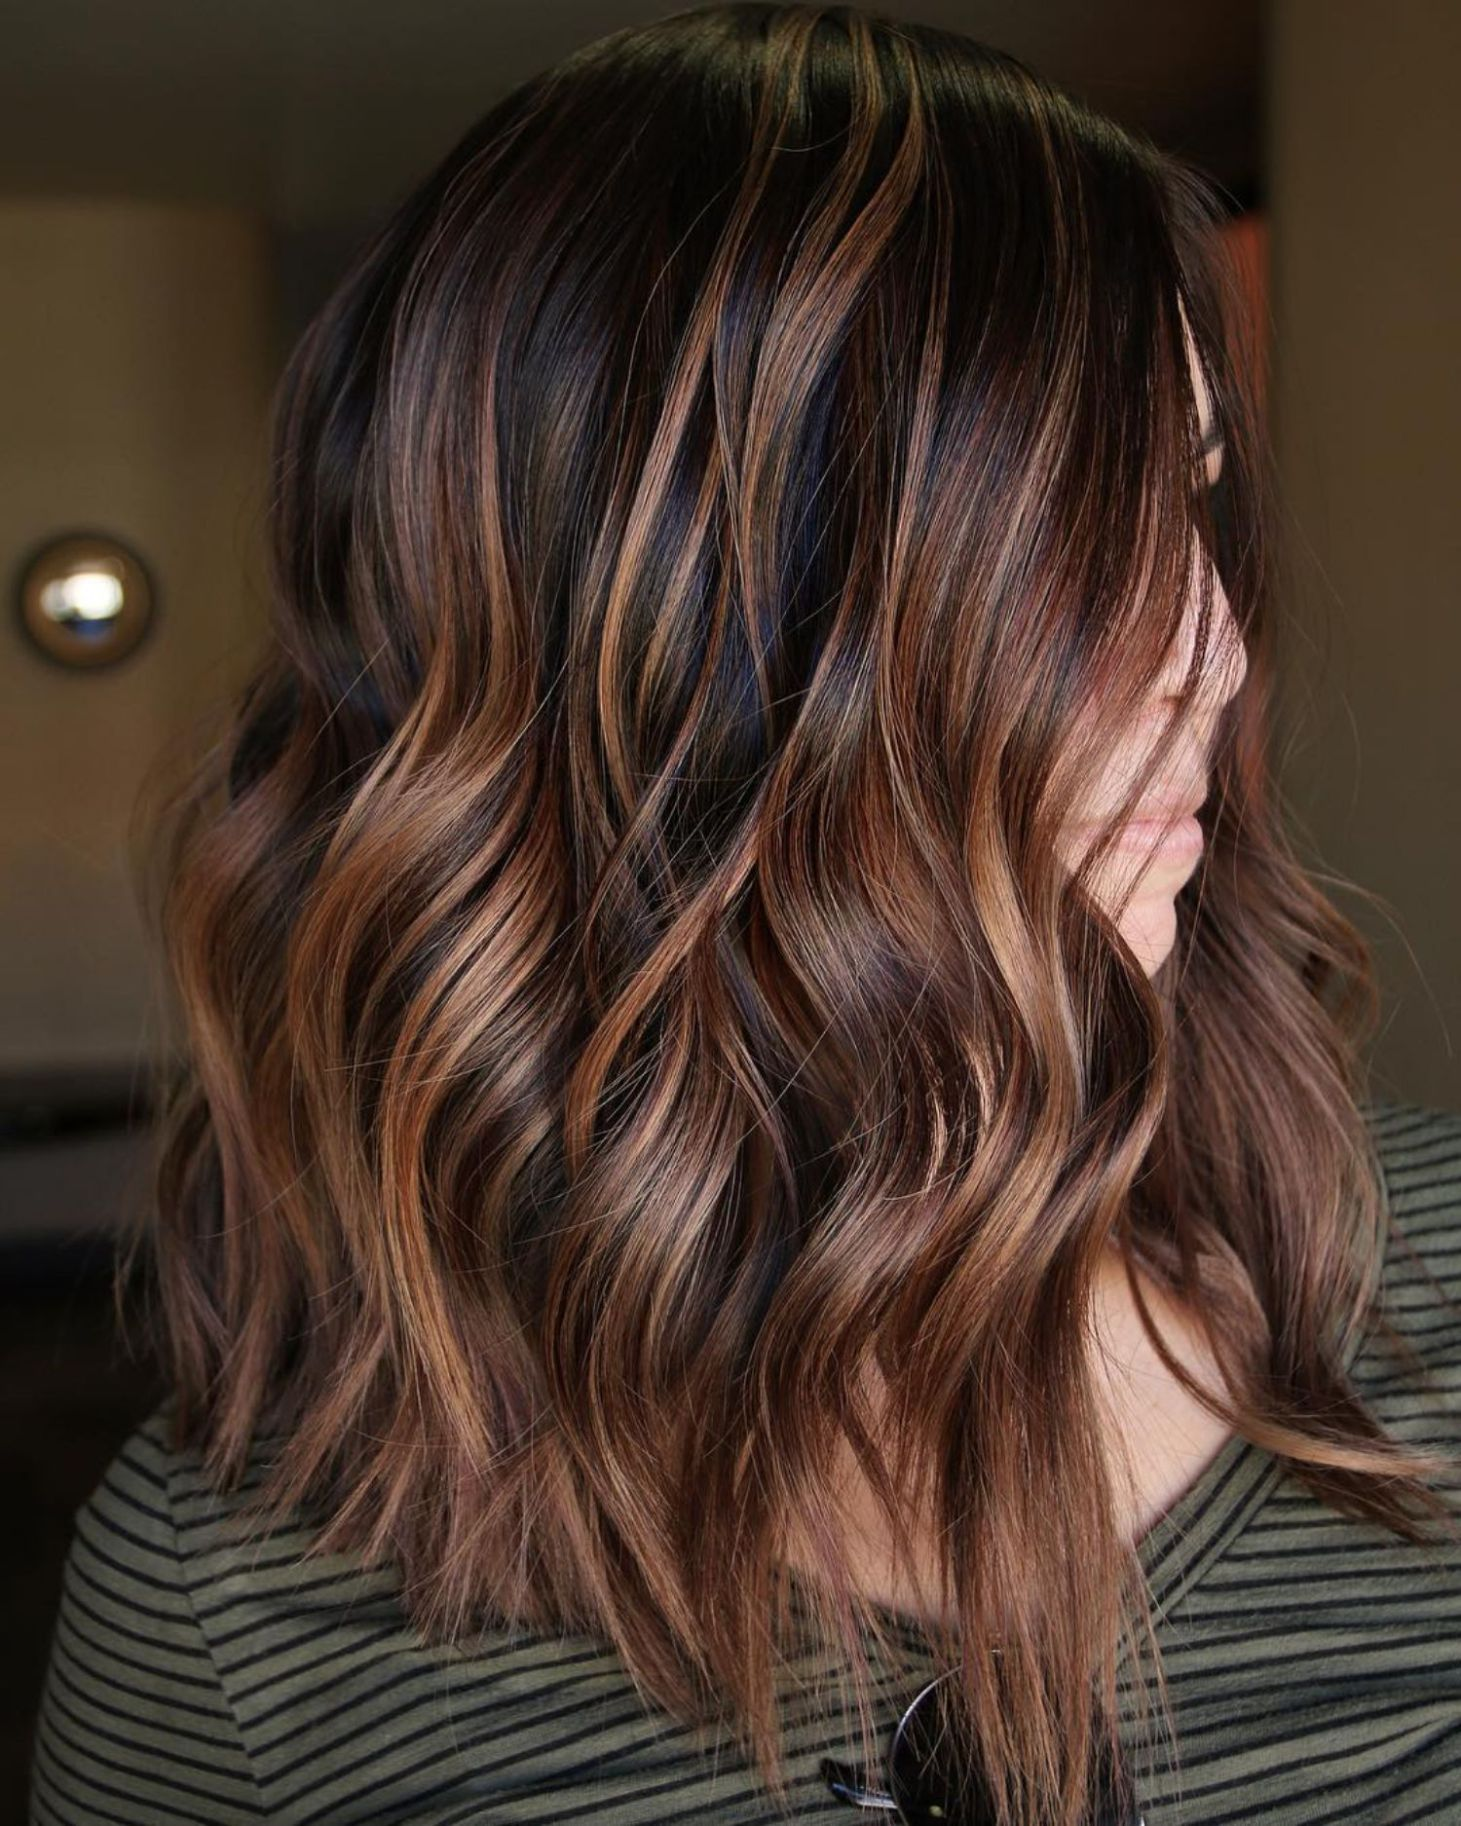 60 Looks With Caramel Highlights On Brown And Dark Brown Hair Caramel Brown Hair Hair Styles Hair Lengths